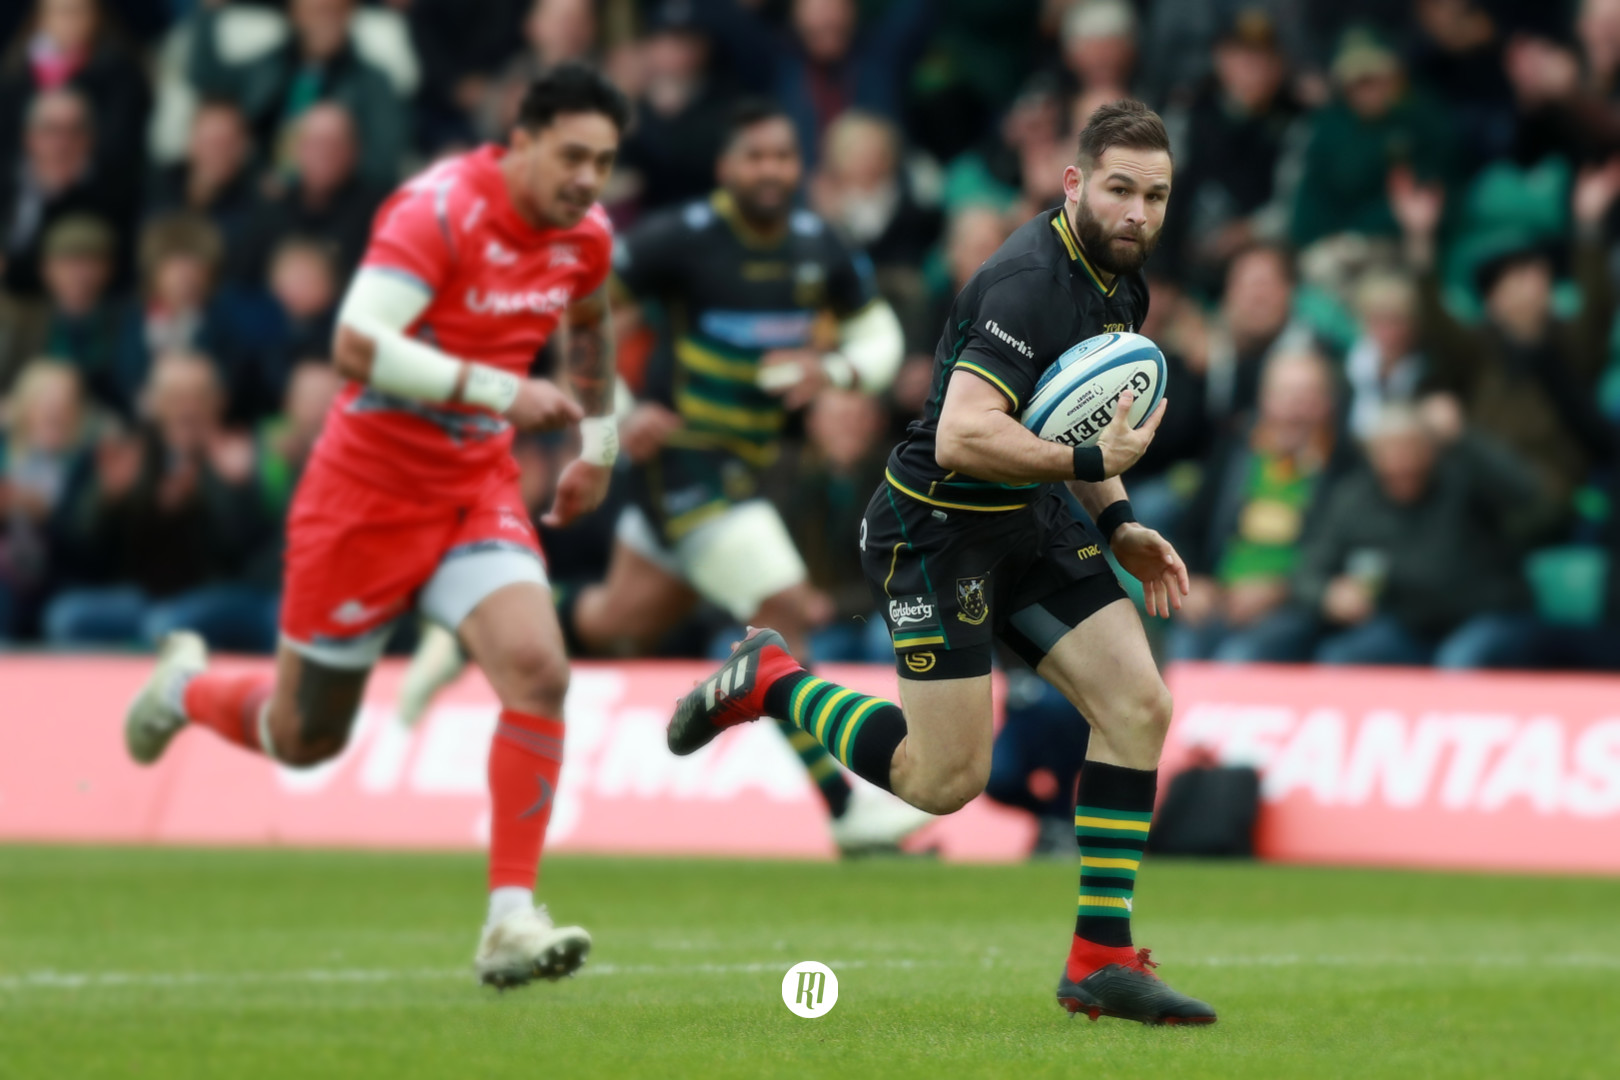 Match Analysis: Northampton Saints vs Sale Sharks